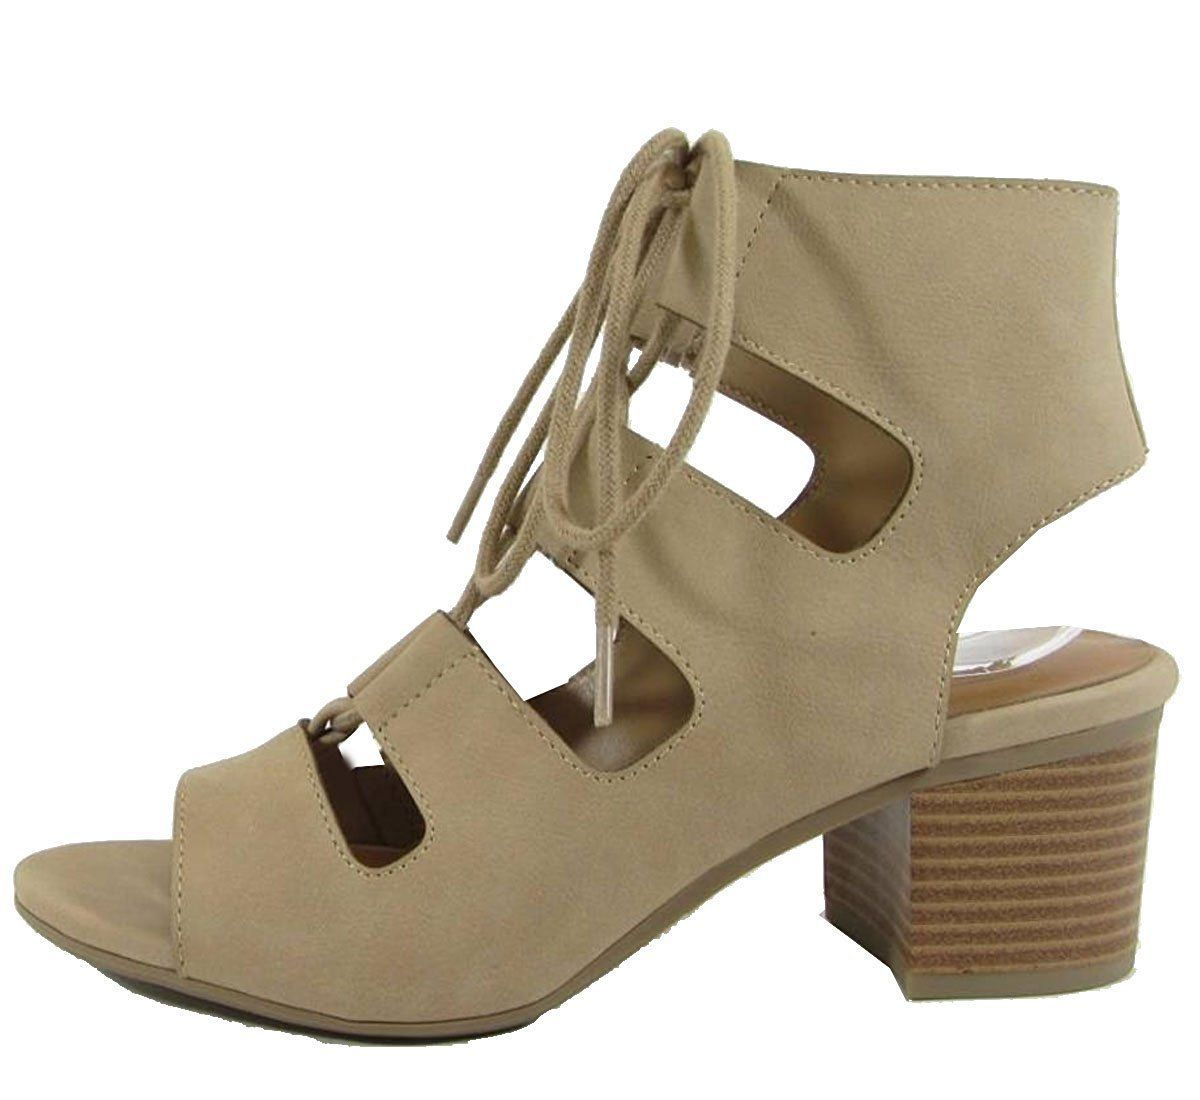 City classified women's cutout lace up stacked chunky heel sandal